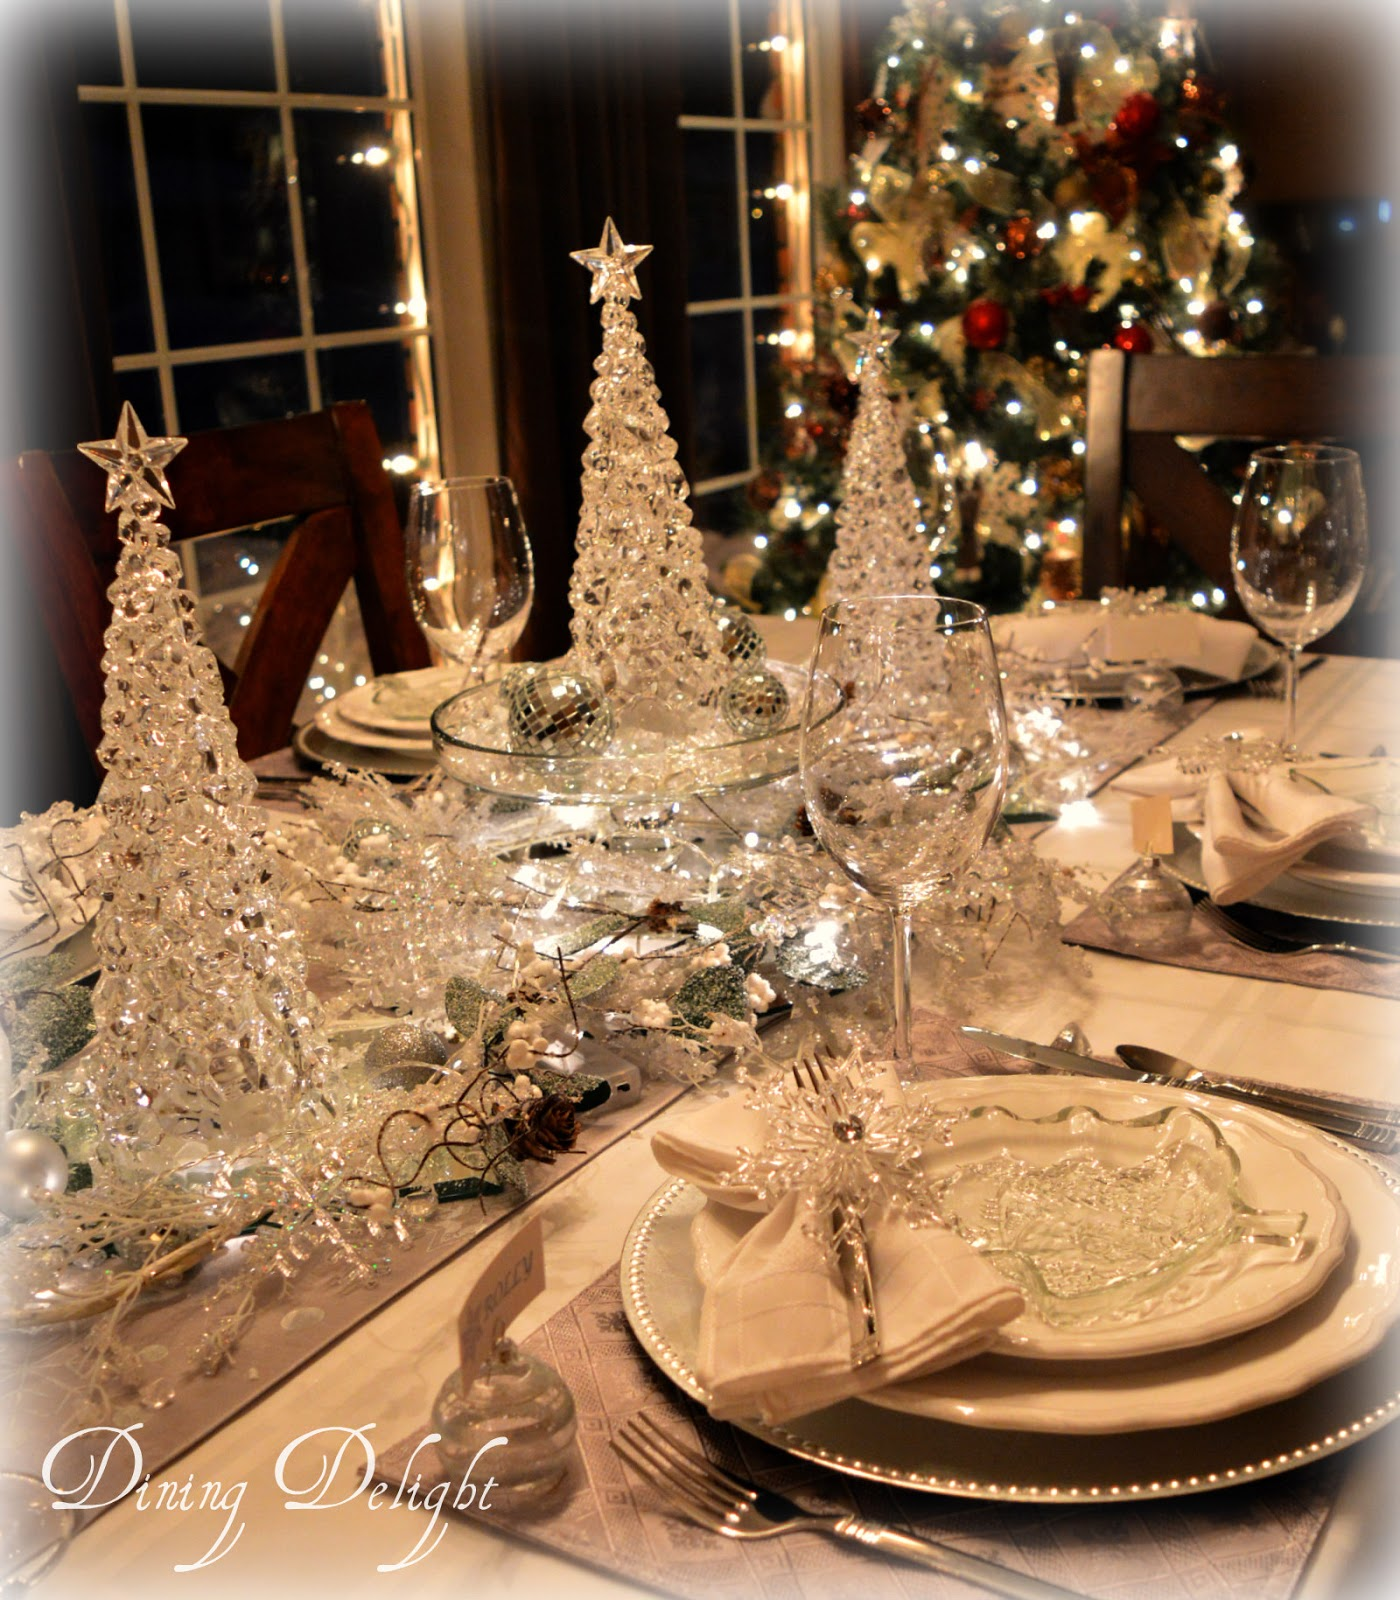 Dining Delight Frost Ice Christmas Tablescape